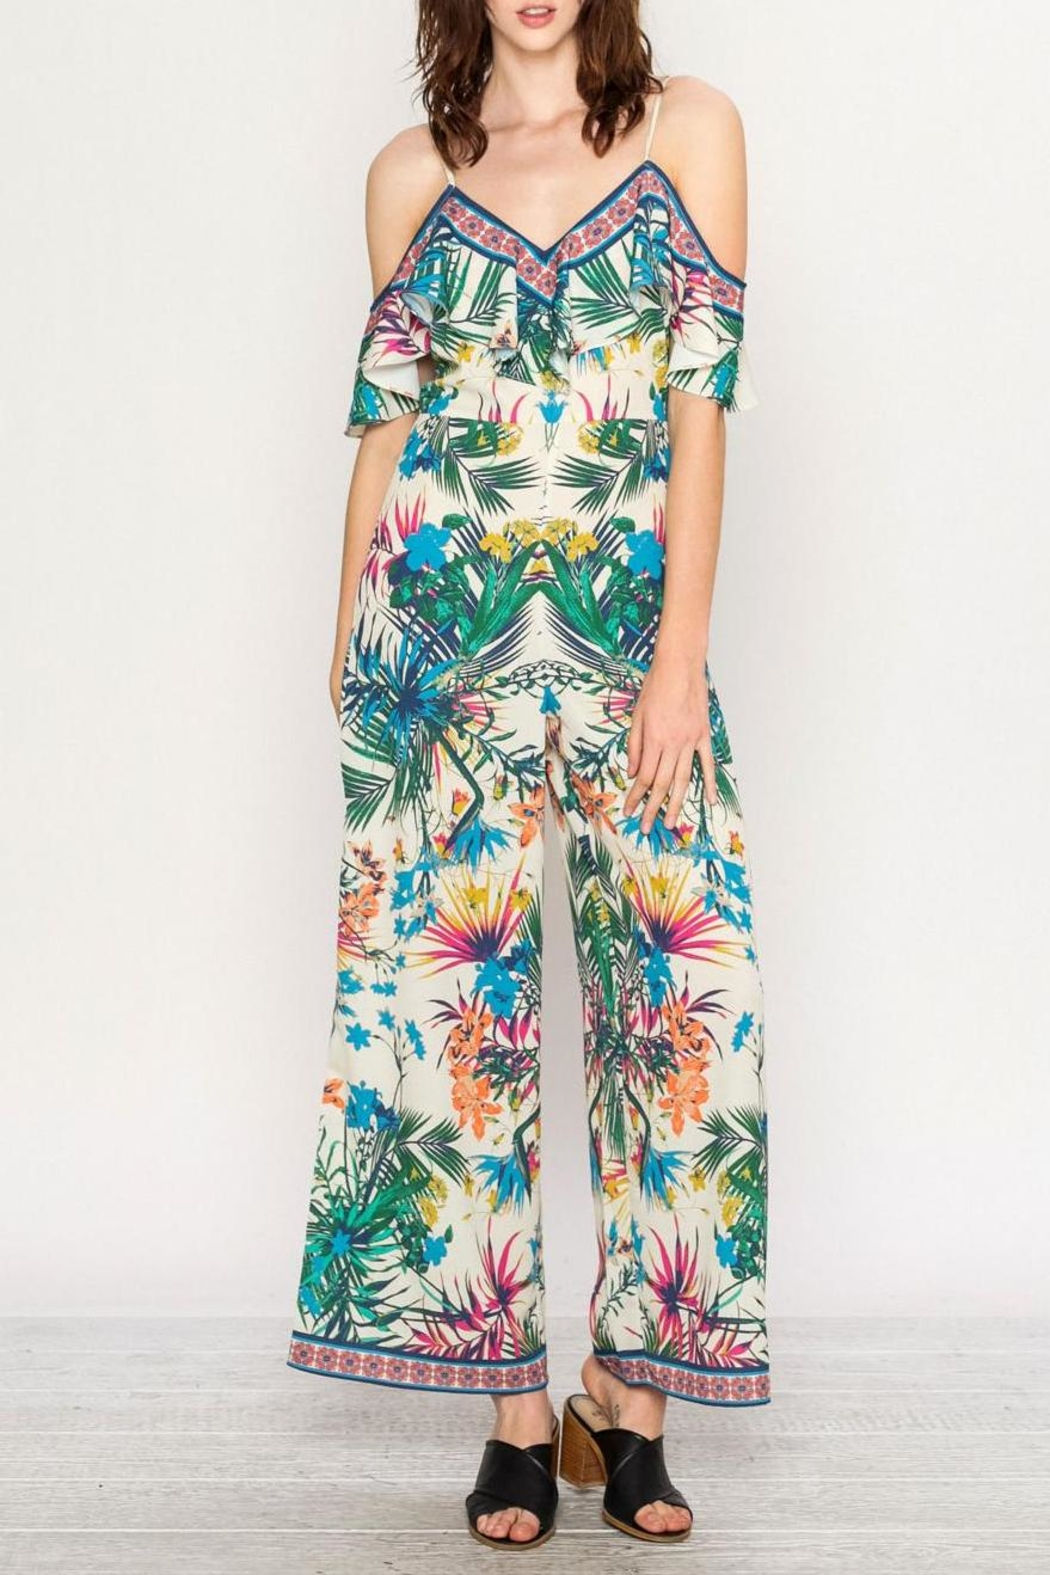 ee72336a8cd98 Flying Tomato Tropical Jumpsuit from Florida by Not Your Typical ...